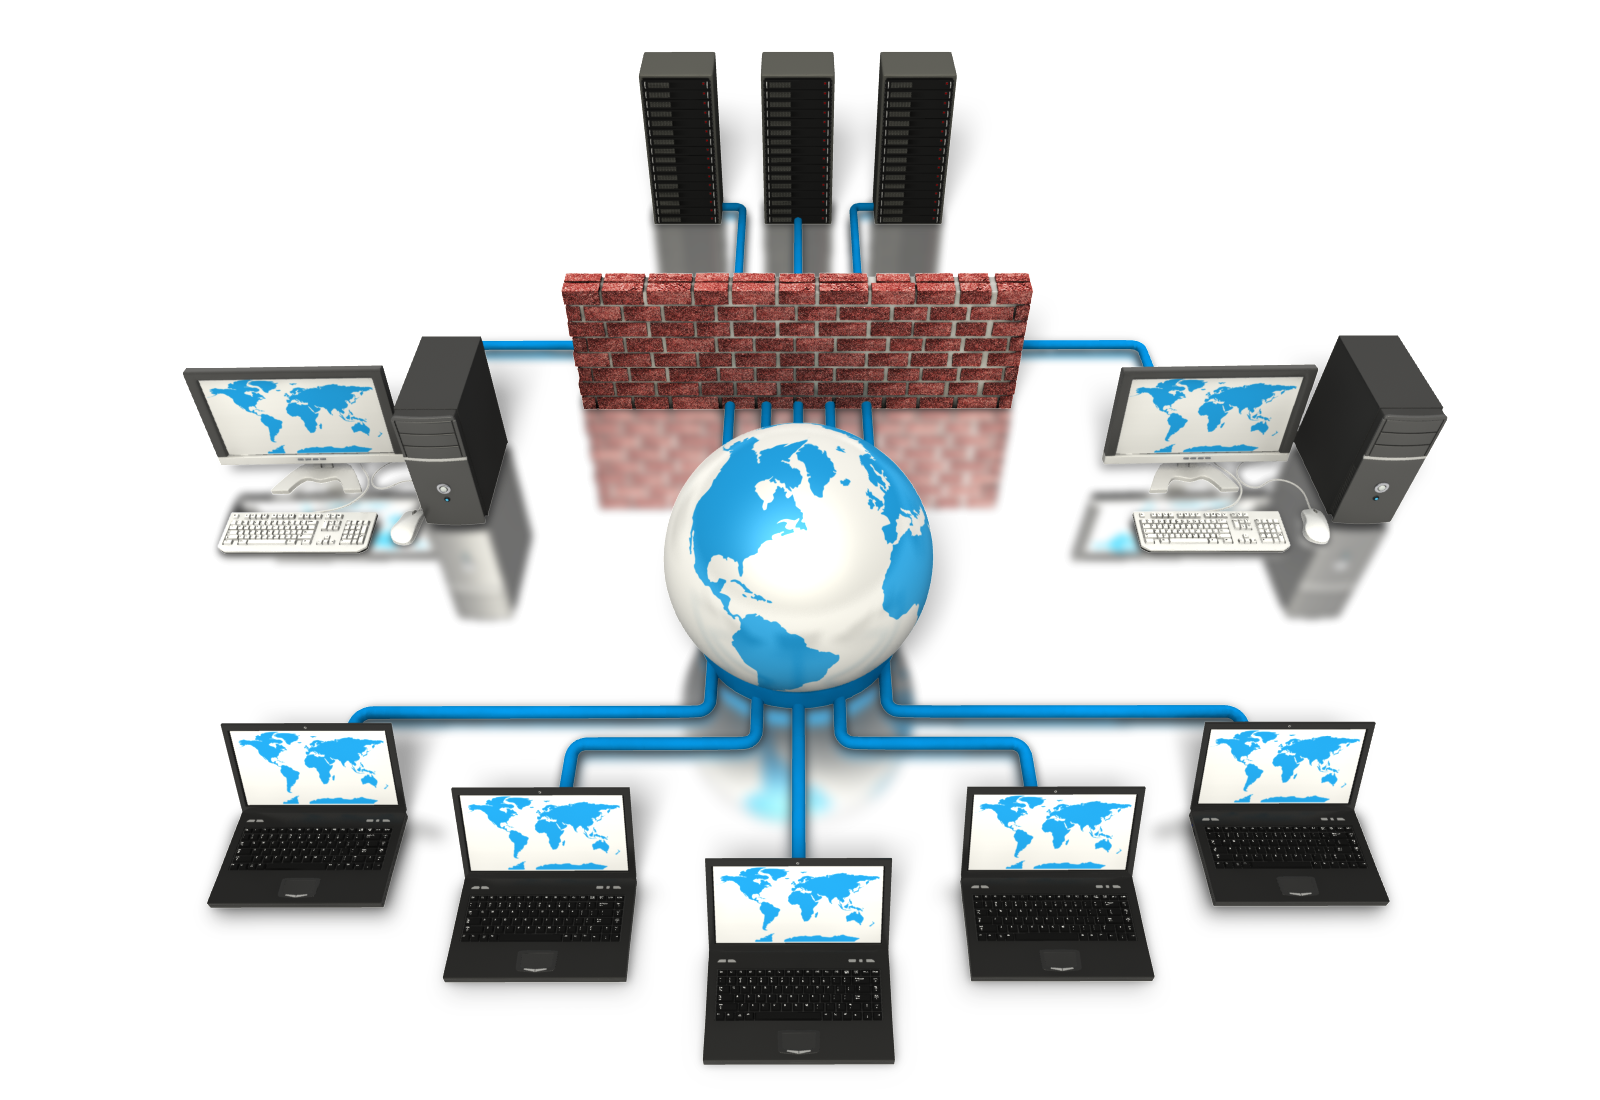 computer network Network analysts cannot simply rely on existing solutions when troubleshooting problems network managers need to be open to an expanded partnership with the security group.